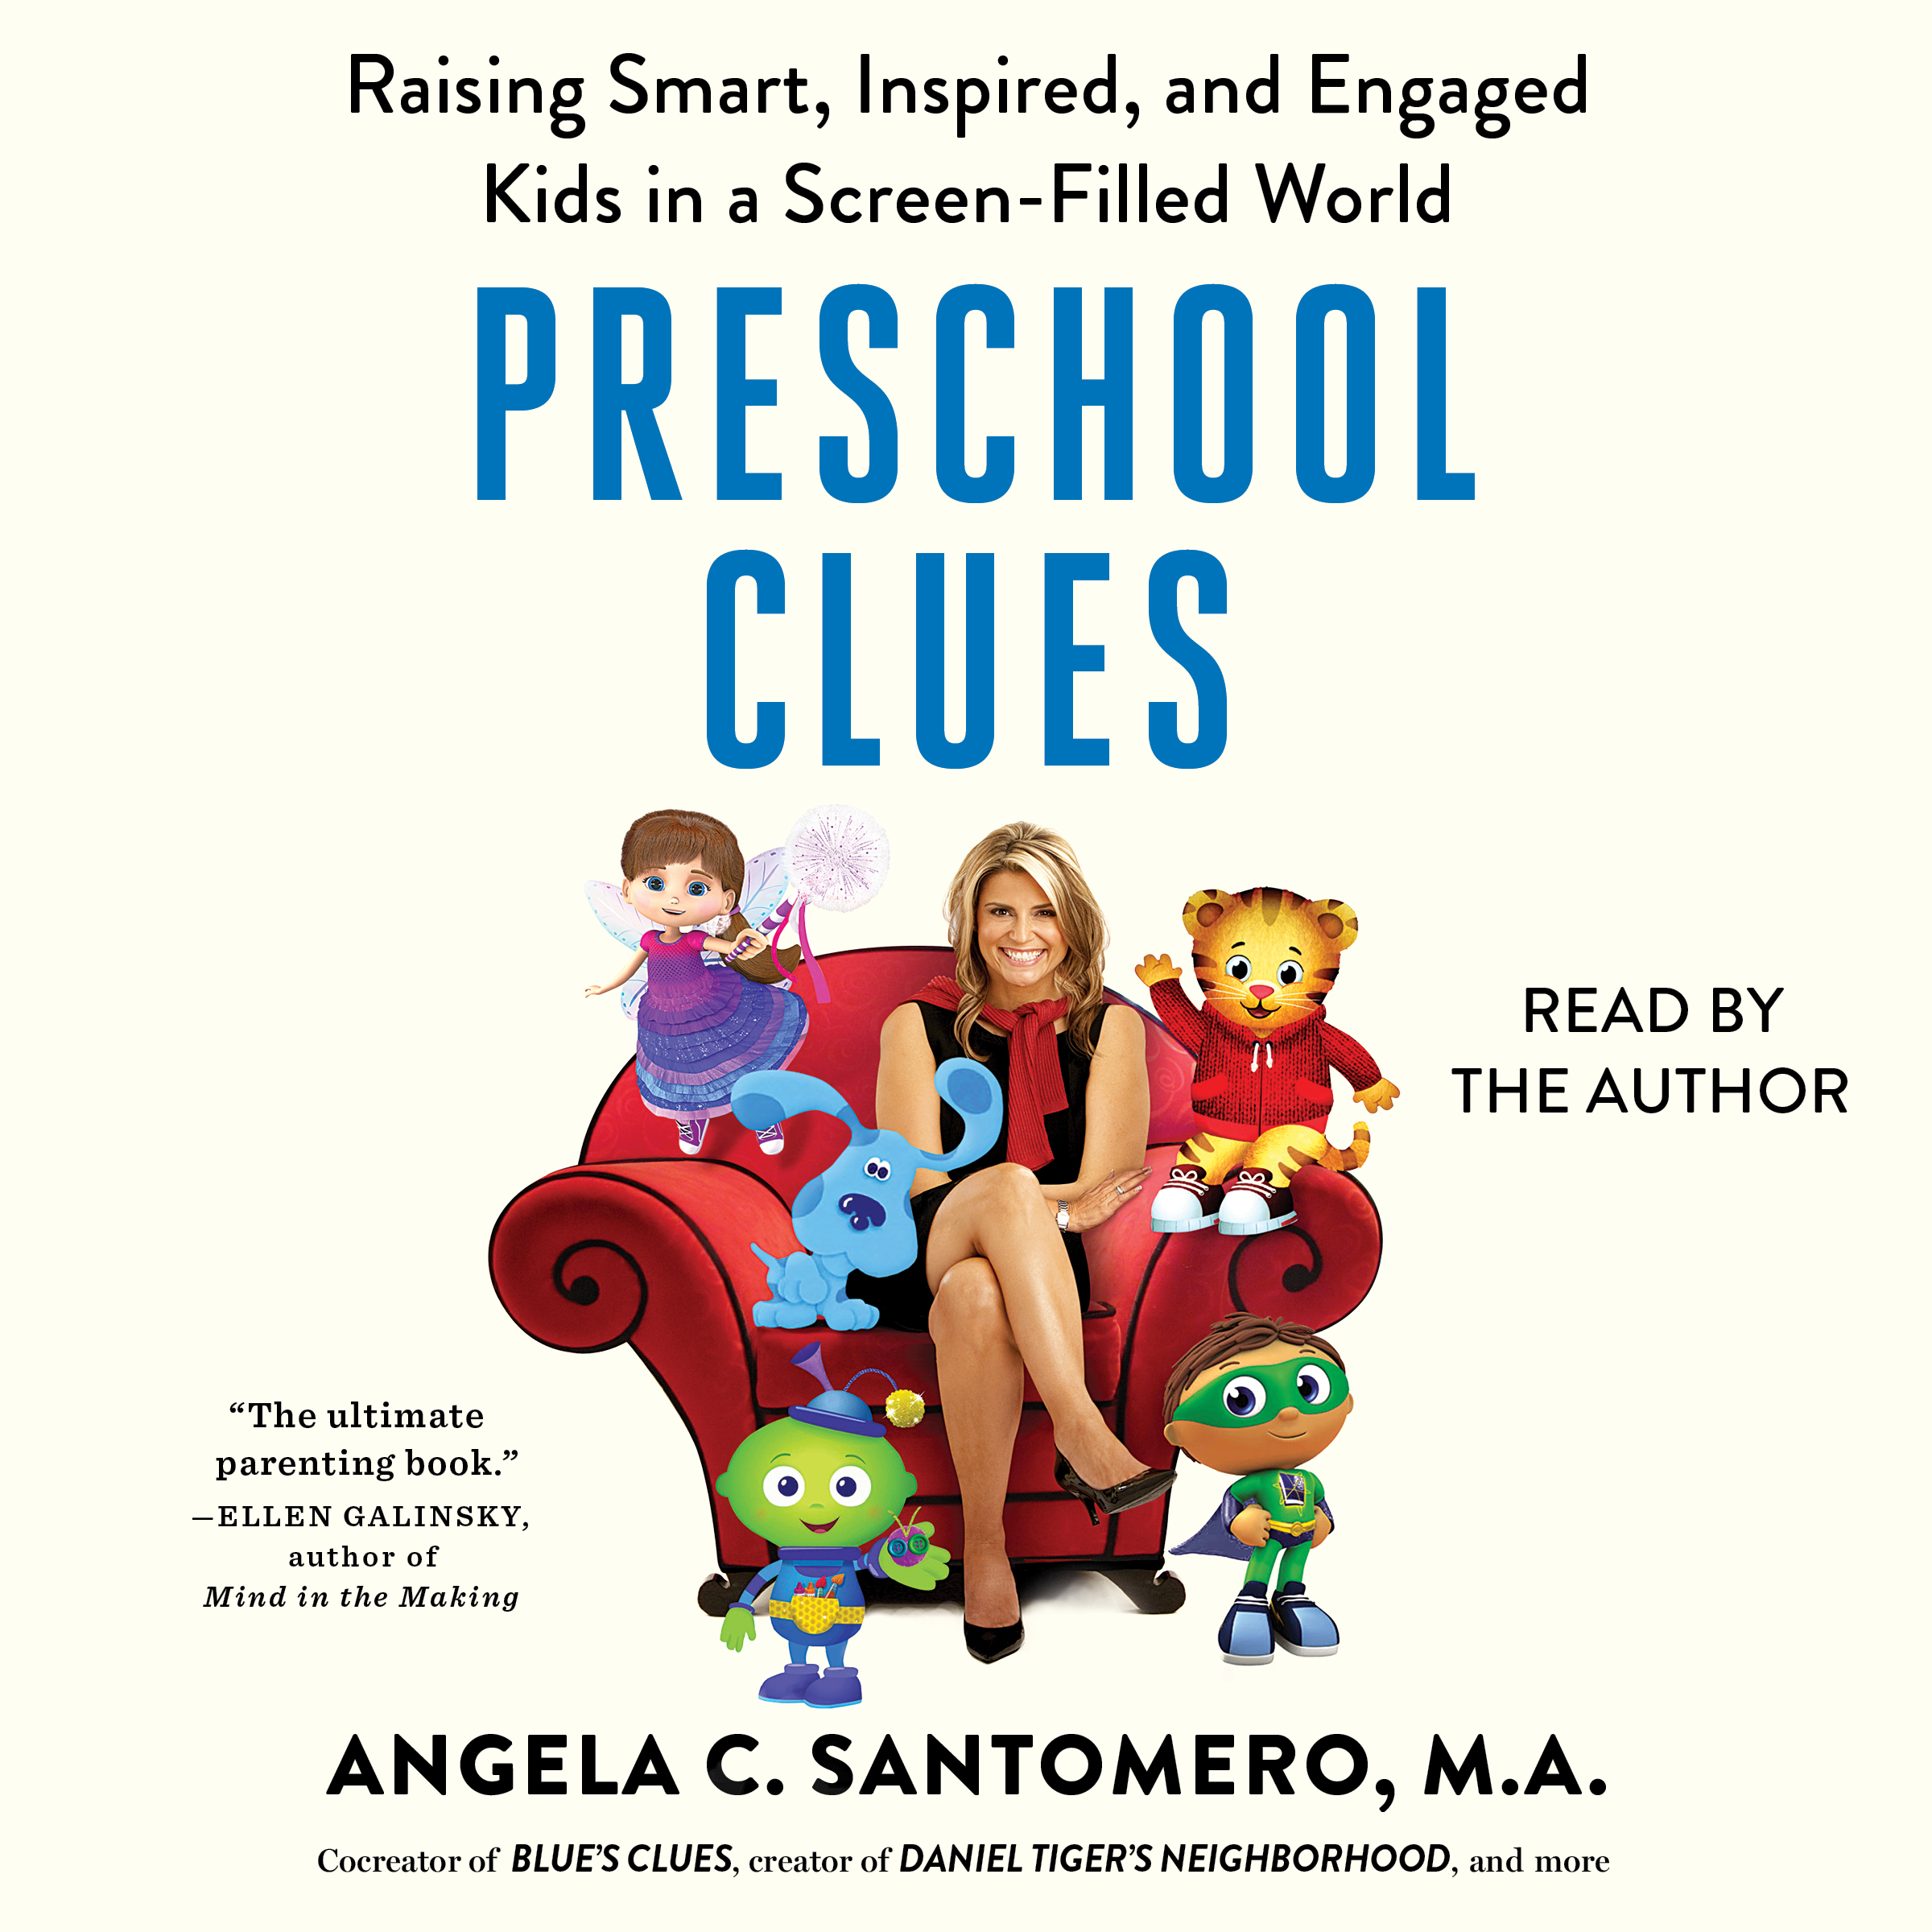 Preschool Clues - Released through Simon & Schuster